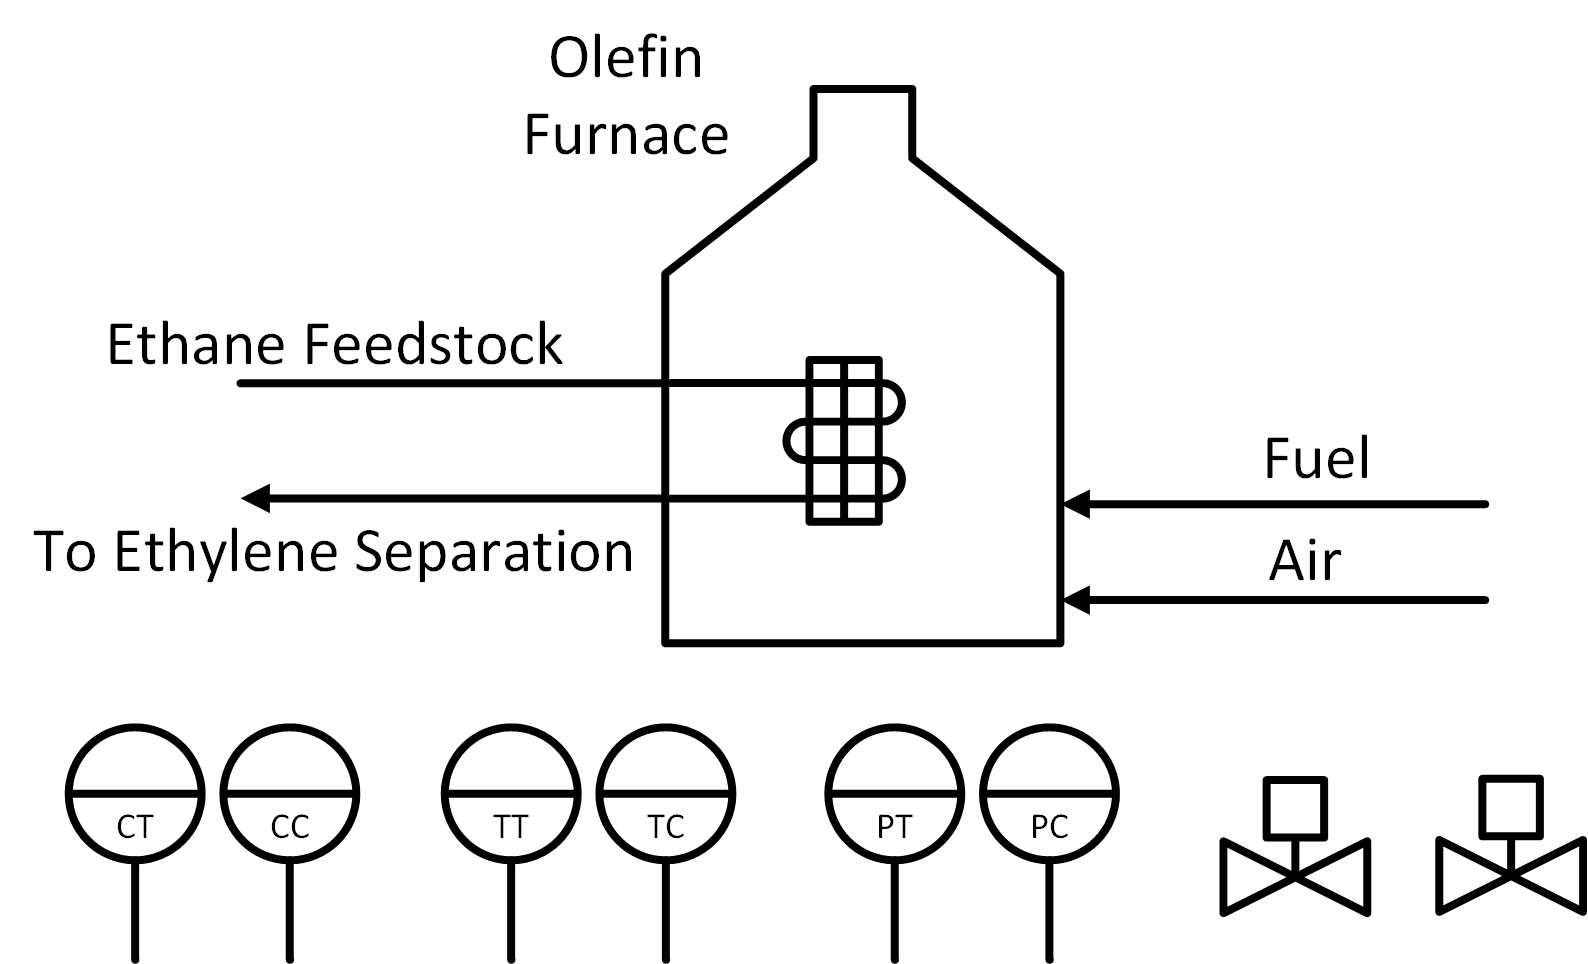 Process controller design exercises an olefin furnace is used to convert an ethane propane mixture into a product stream rich in ethylene and propylene the product stream is sent to an ccuart Gallery